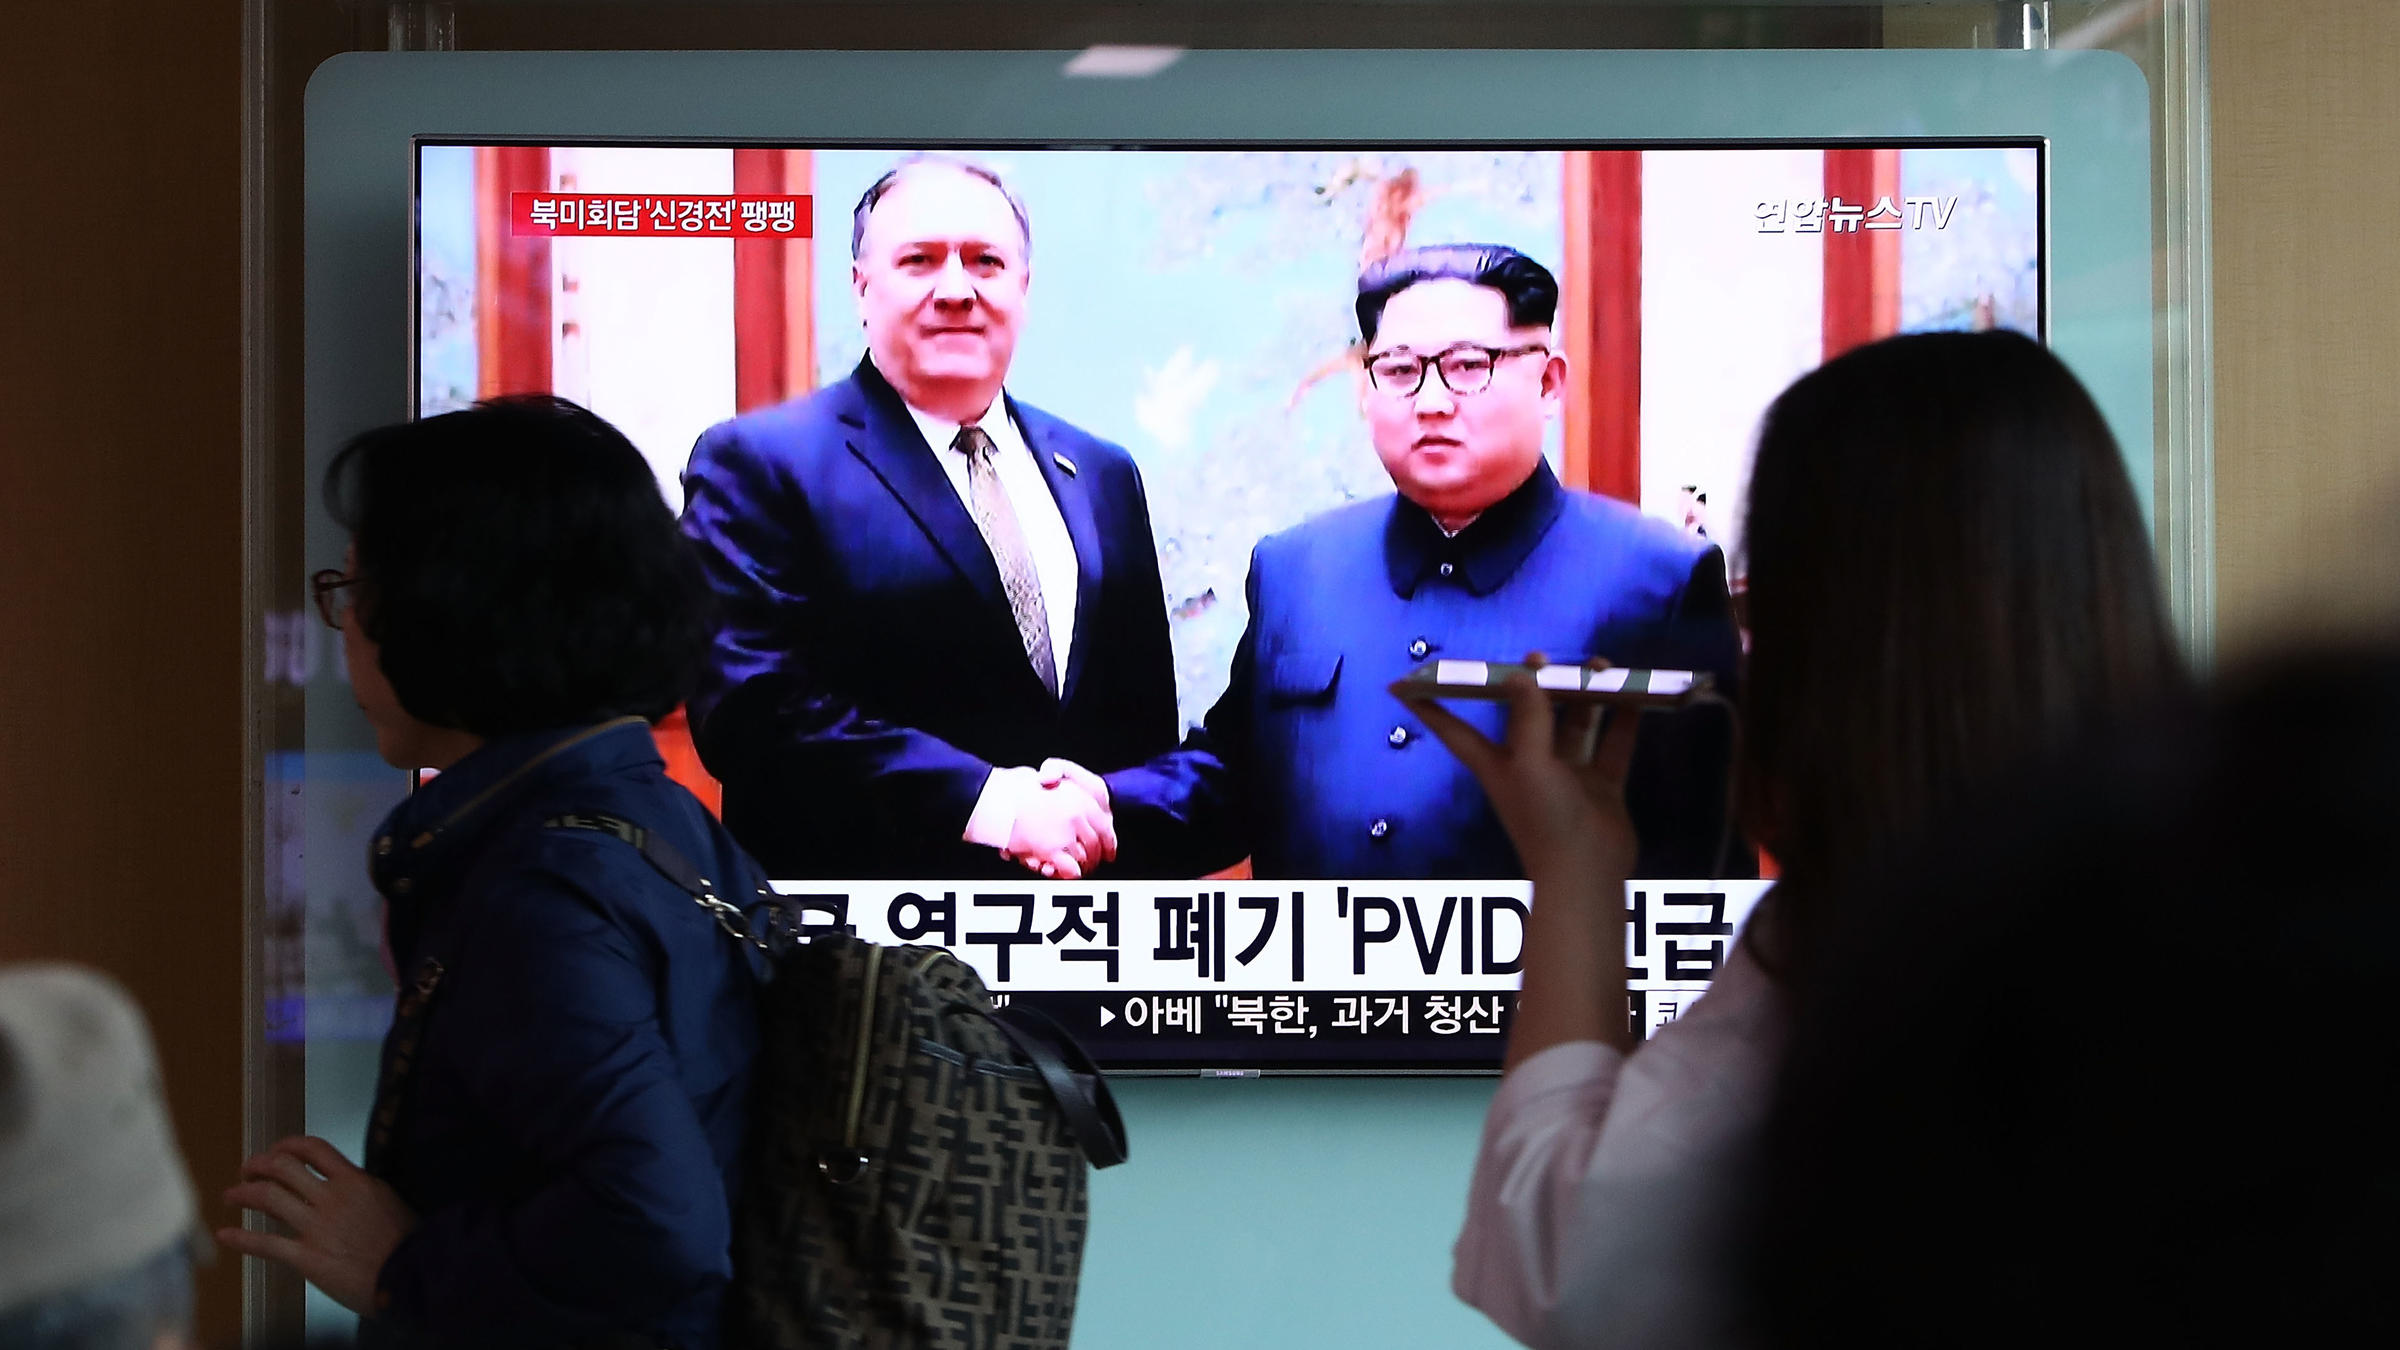 Pompeo in North Korea for pre-summit meetings